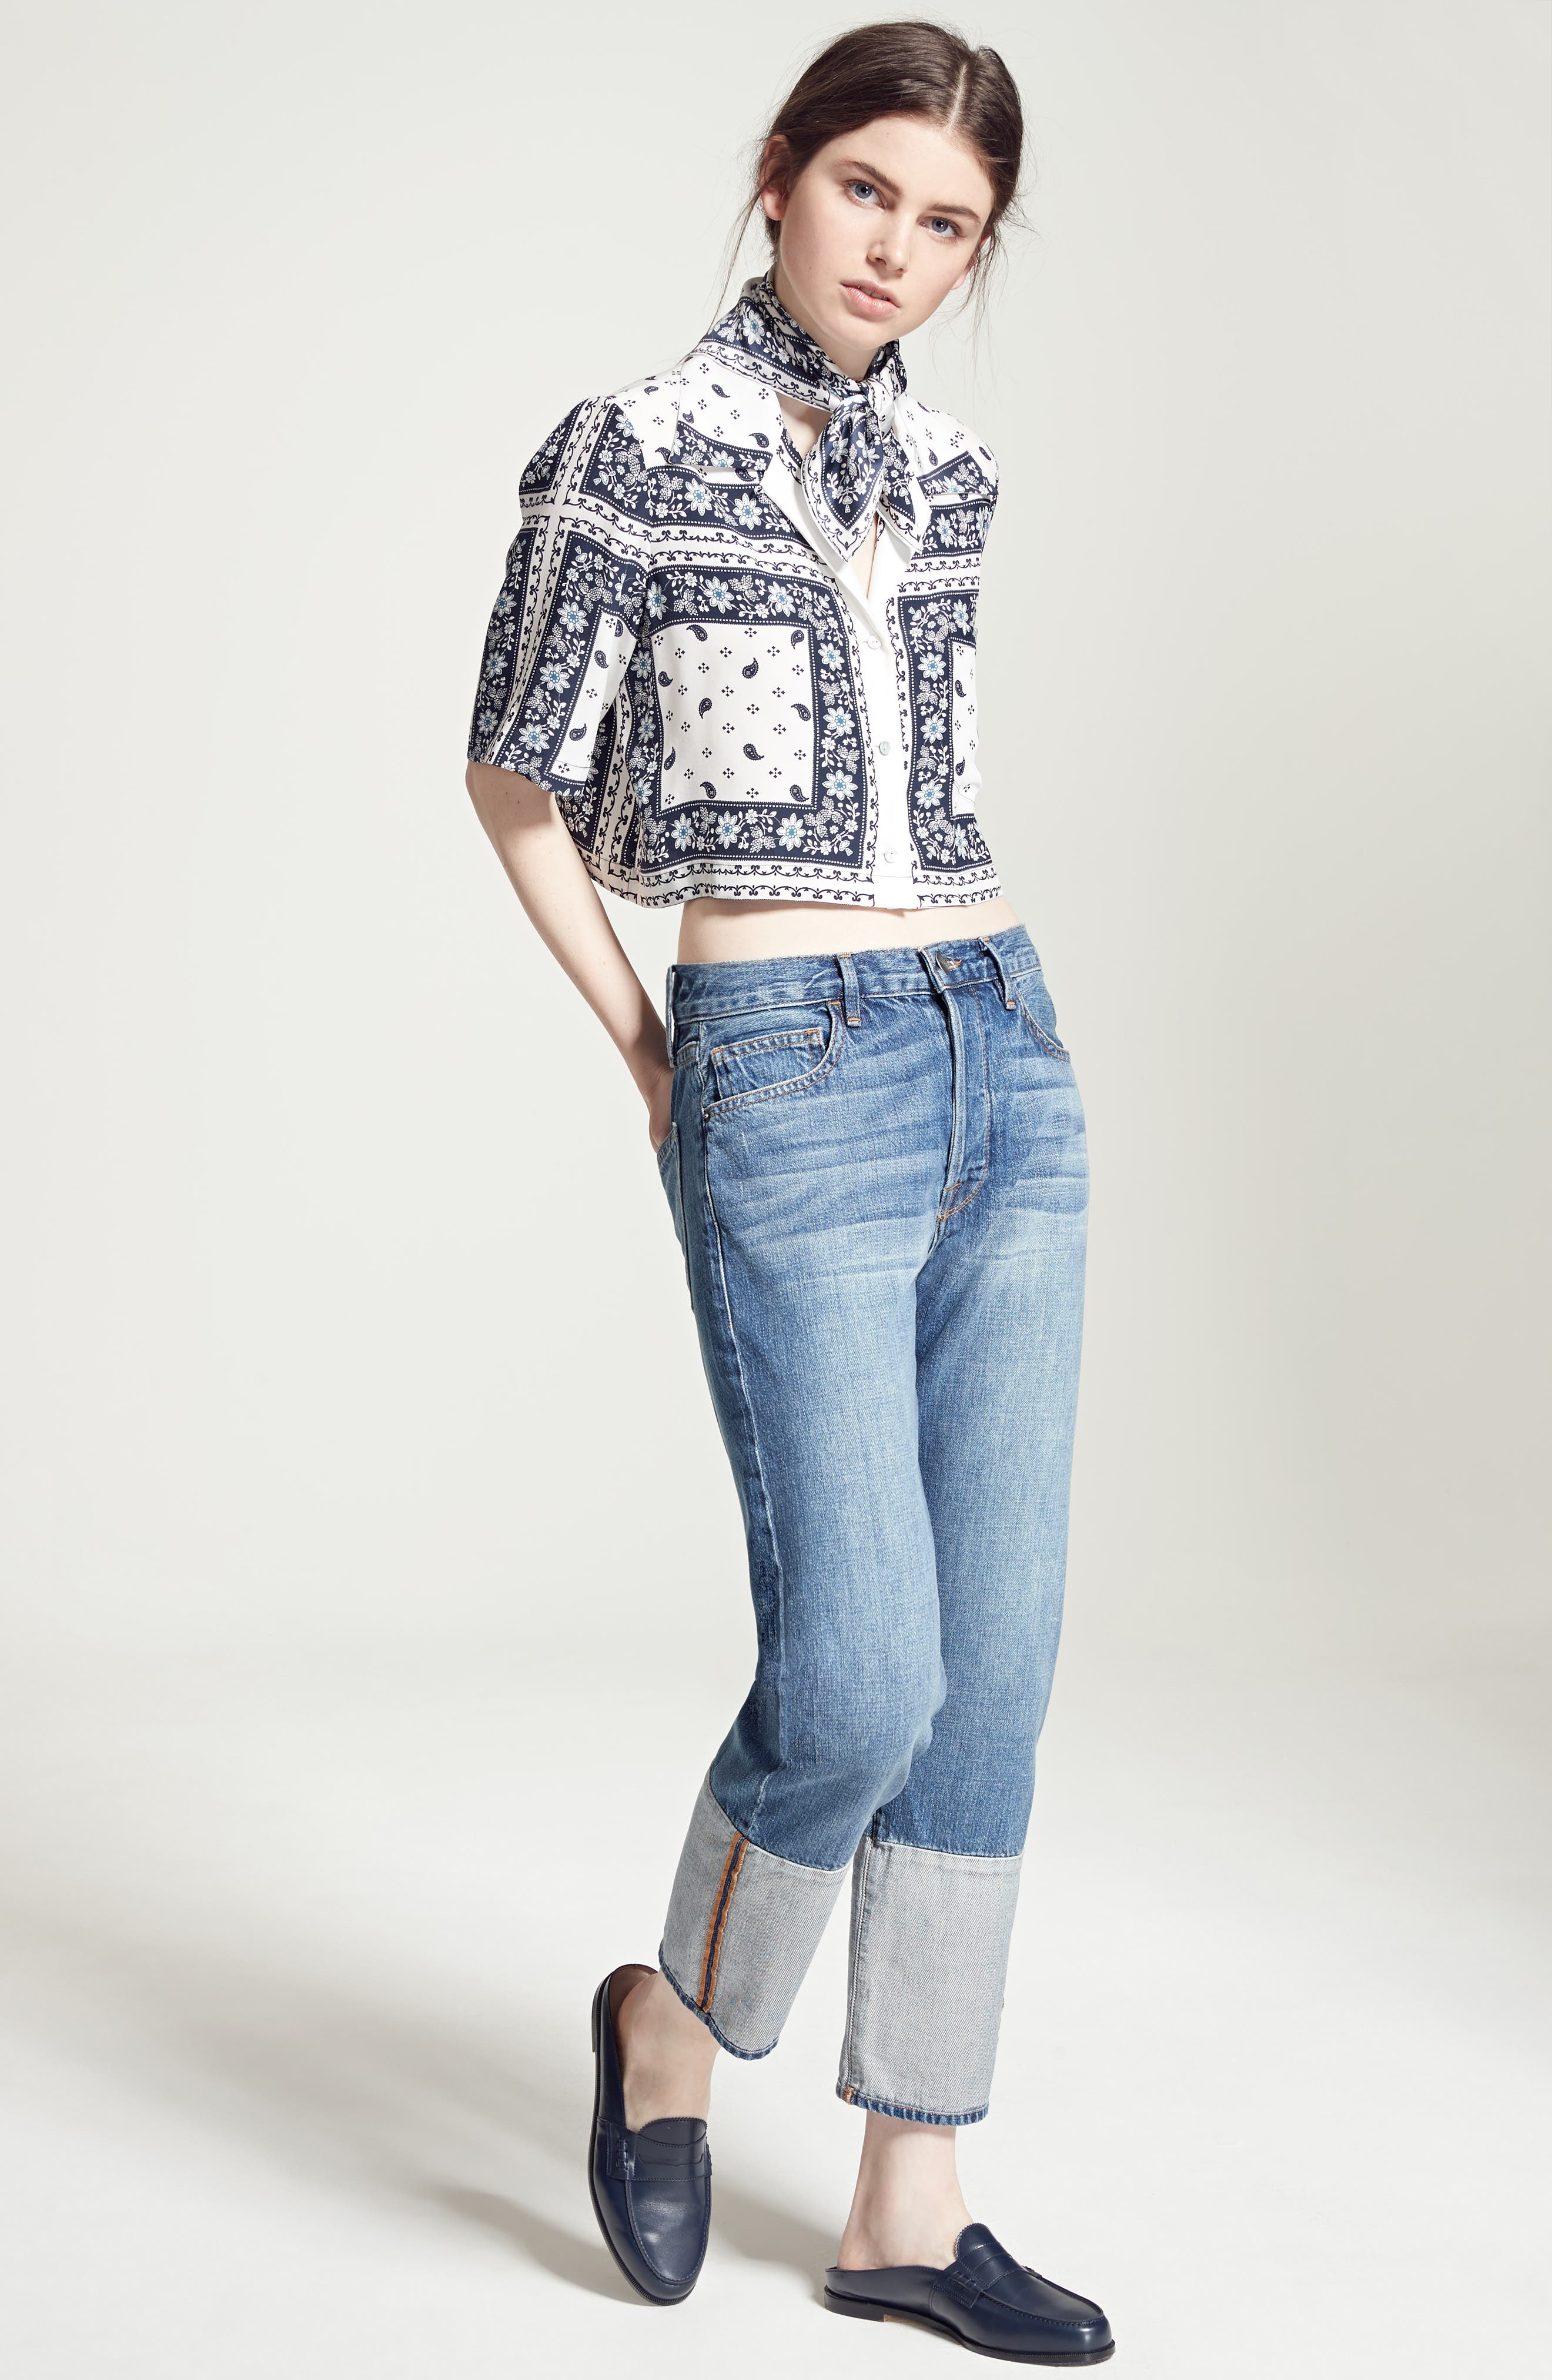 Cinq à Sept Top & FRAME Jeans Outfit with Accessories